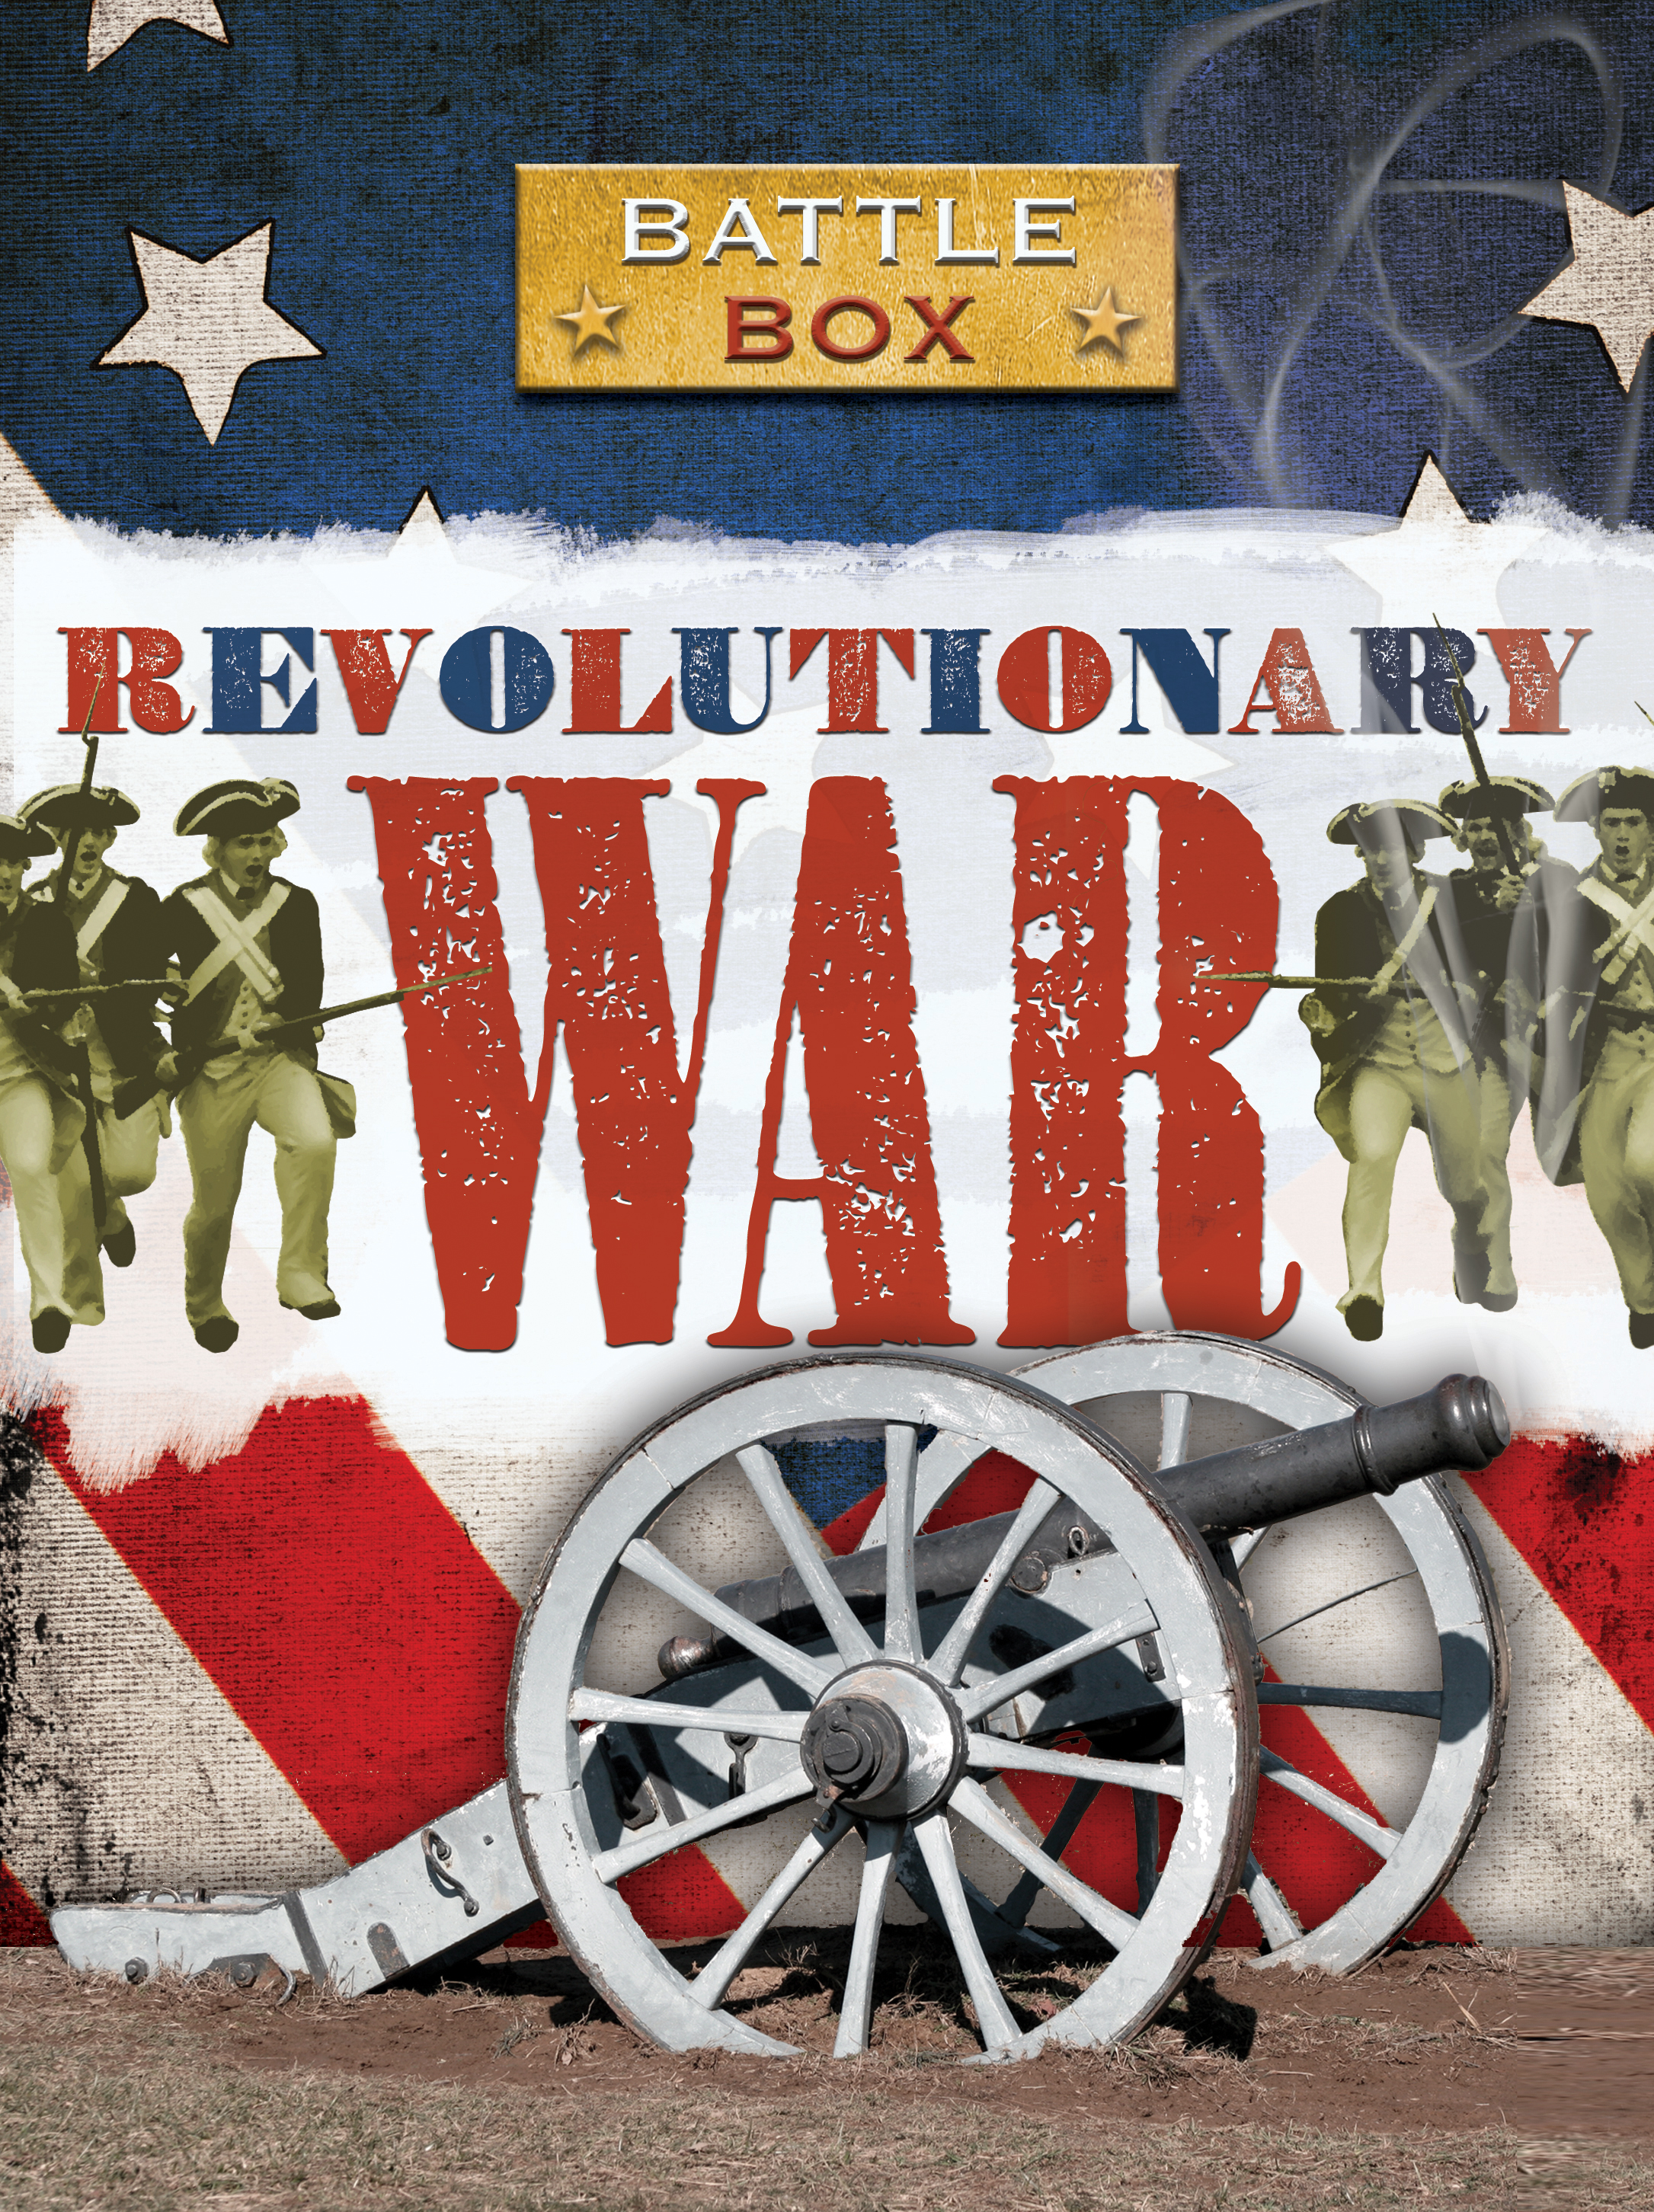 the war for our little brown The book benevolent assimilation recounts that taft assured president mckinley that 'our little brown brothers' would need 'fifty philippine-american war.